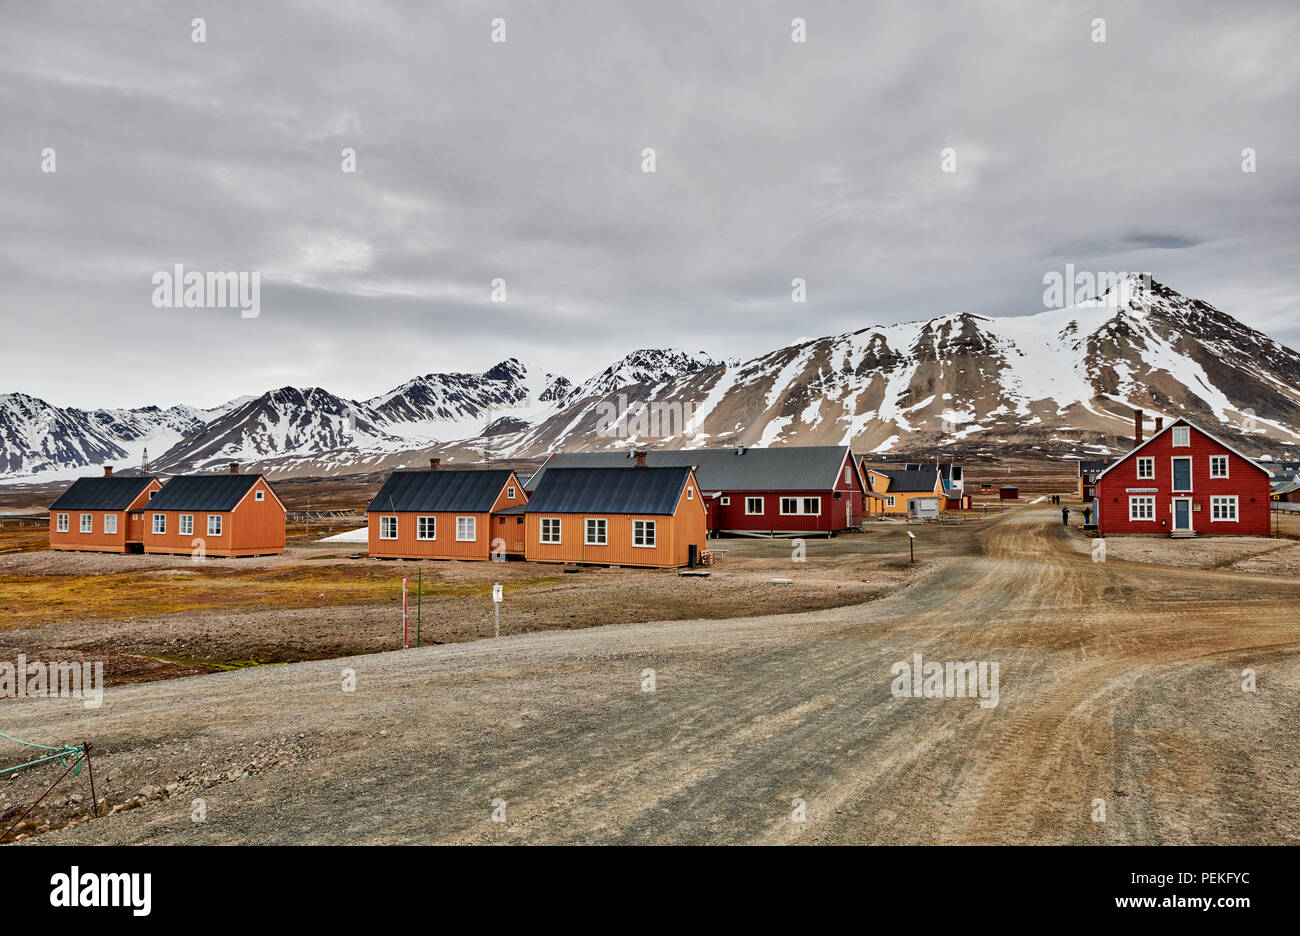 buildings of the Northernmost civilian and functional settlement Ny-Ålesund, Svalbard or Spitsbergen, Europe - Stock Image